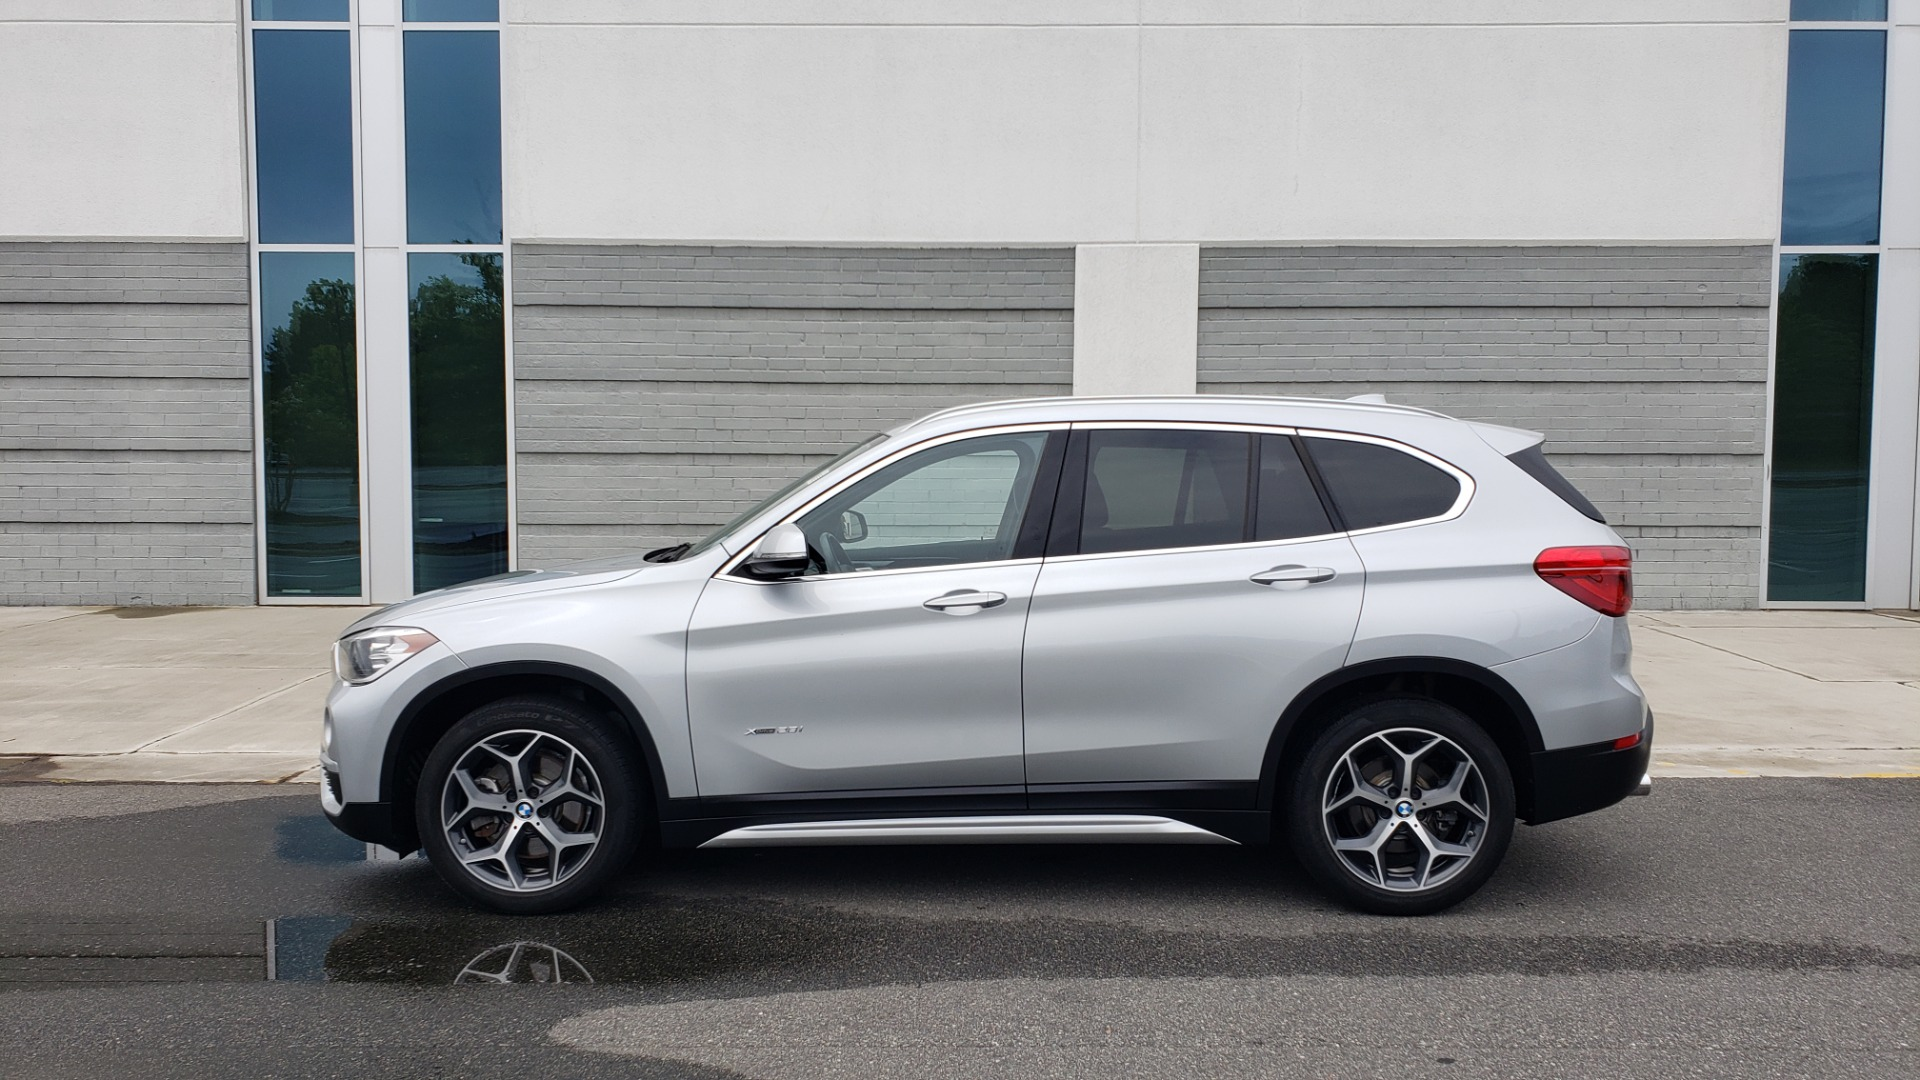 Used 2018 BMW X1 XDRIVE38I / NAV / CONV PKG / PANO-ROOF / HTD STS / REARVIEW for sale $28,995 at Formula Imports in Charlotte NC 28227 6